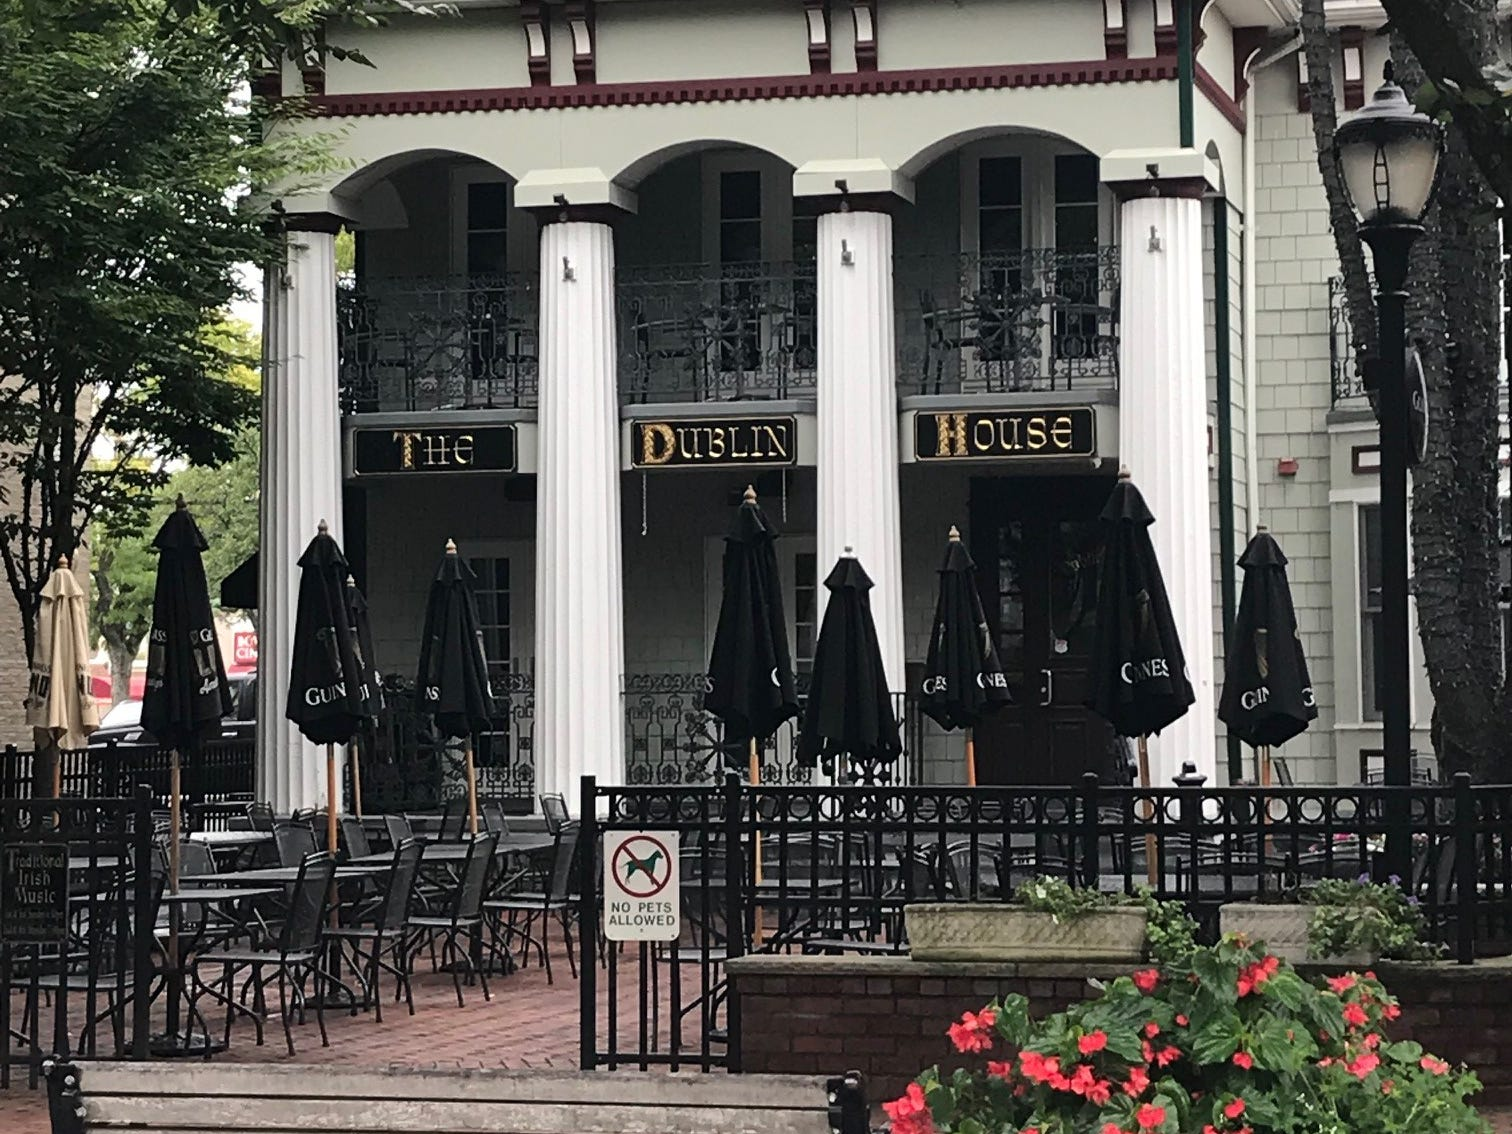 The Dublin House Restaurant & Pub is a longtime favorite for Irish food and outdoor dining along Monmouth Street in Red Bank.